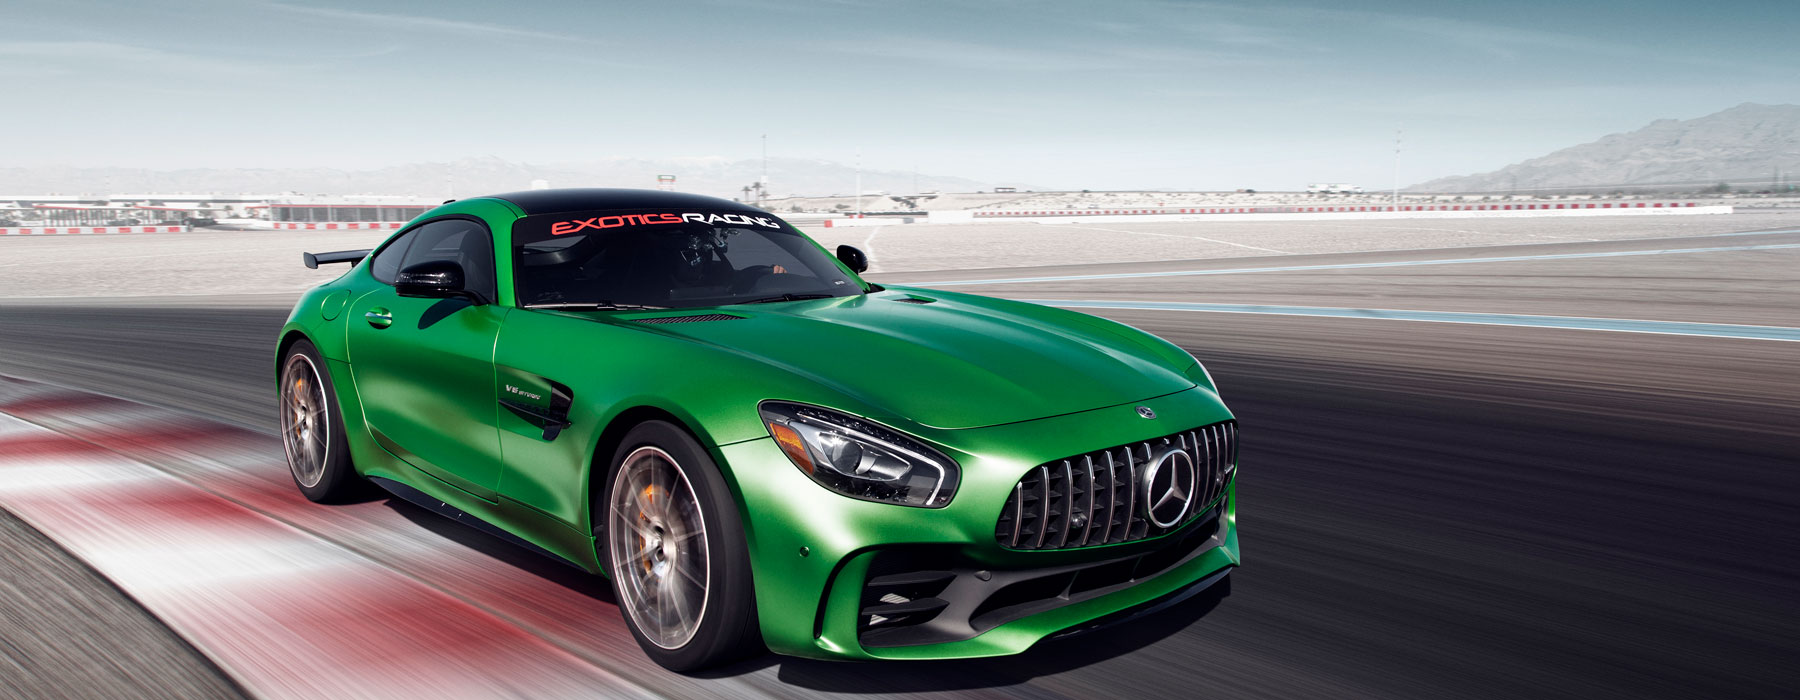 Drive A Mercedes Amg Gt R On A Racetrack At Exotics Racing